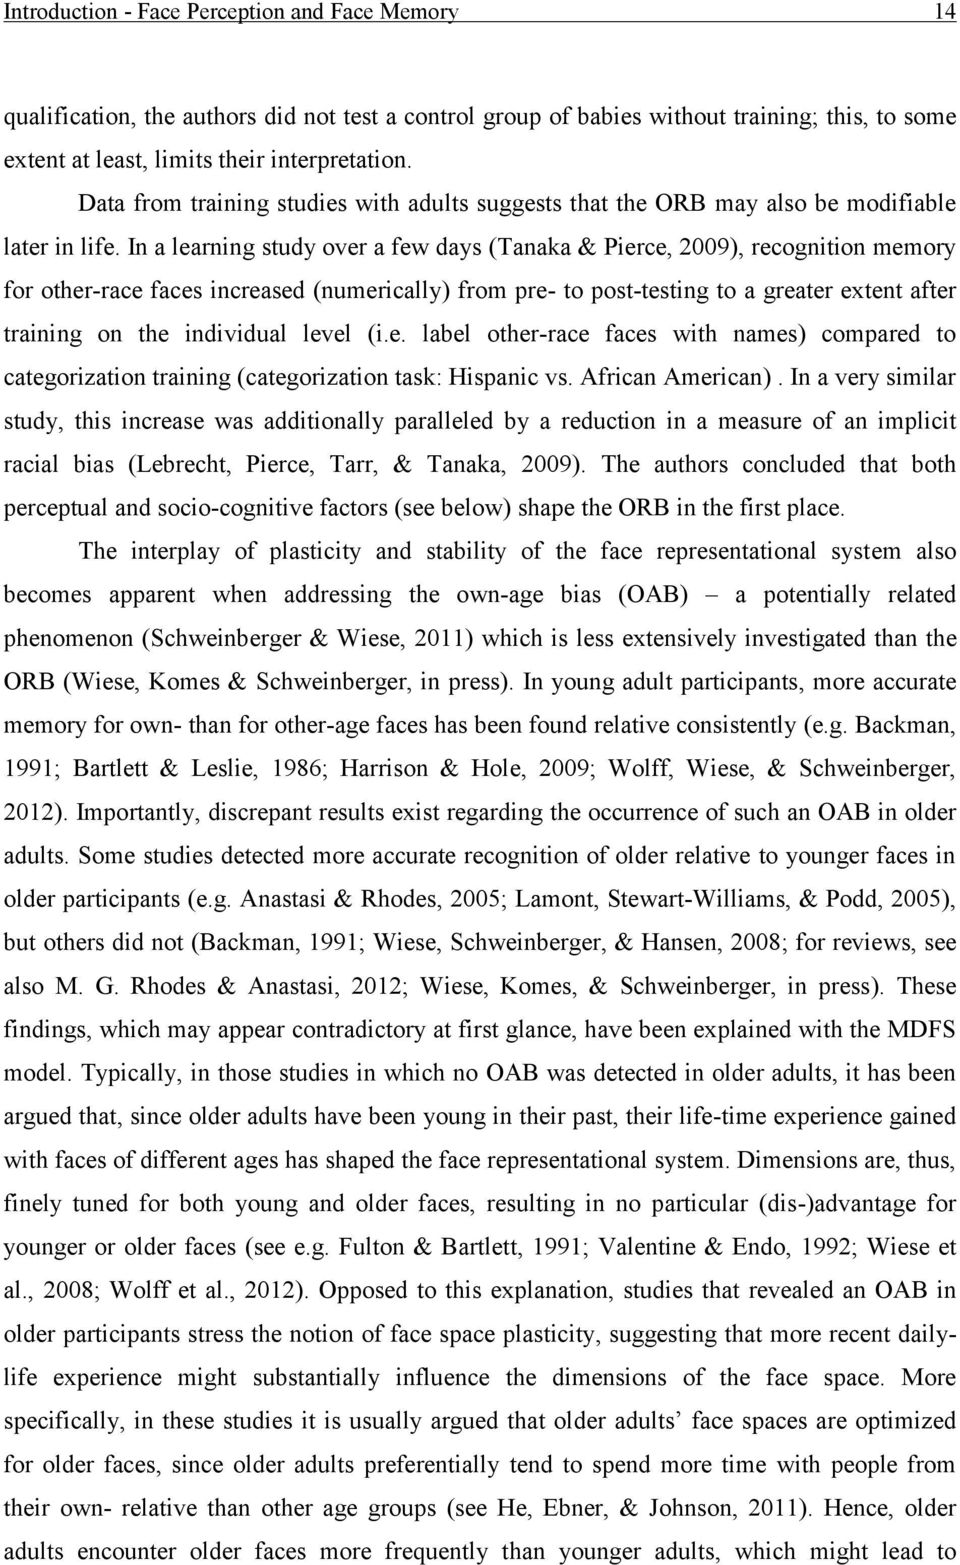 In a learning study over a few days (Tanaka & Pierce, 2009), recognition memory for other-race faces increased (numerically) from pre- to post-testing to a greater extent after training on the